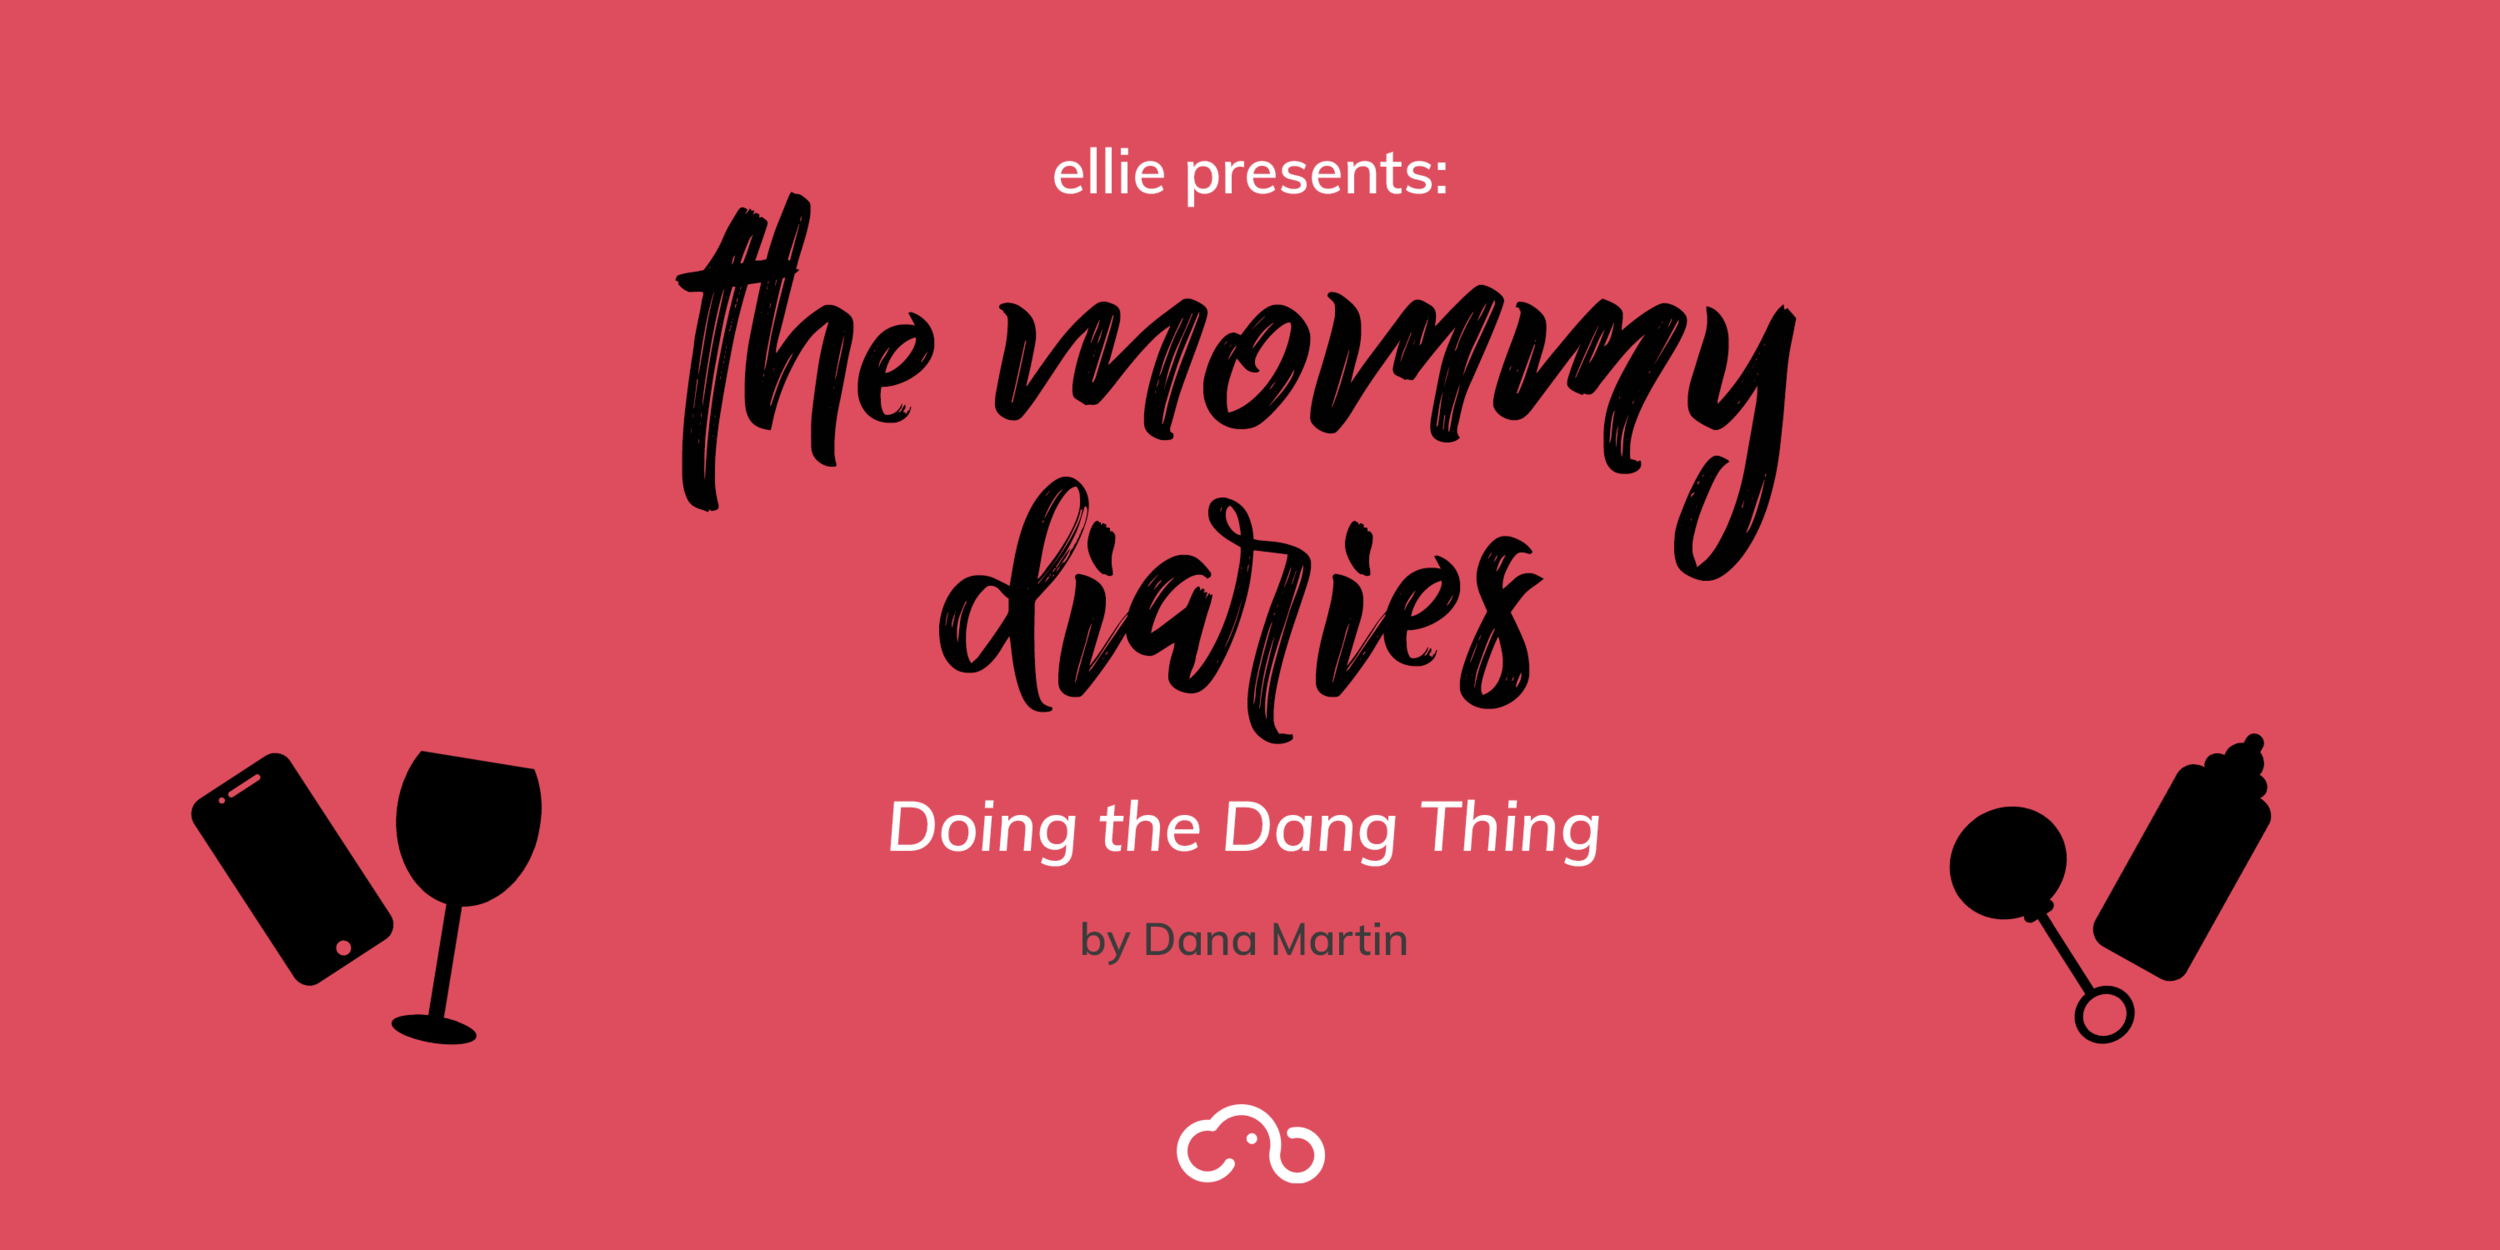 ellie presents: the mommy diaries Doing the Dang Thing by Dana Martin